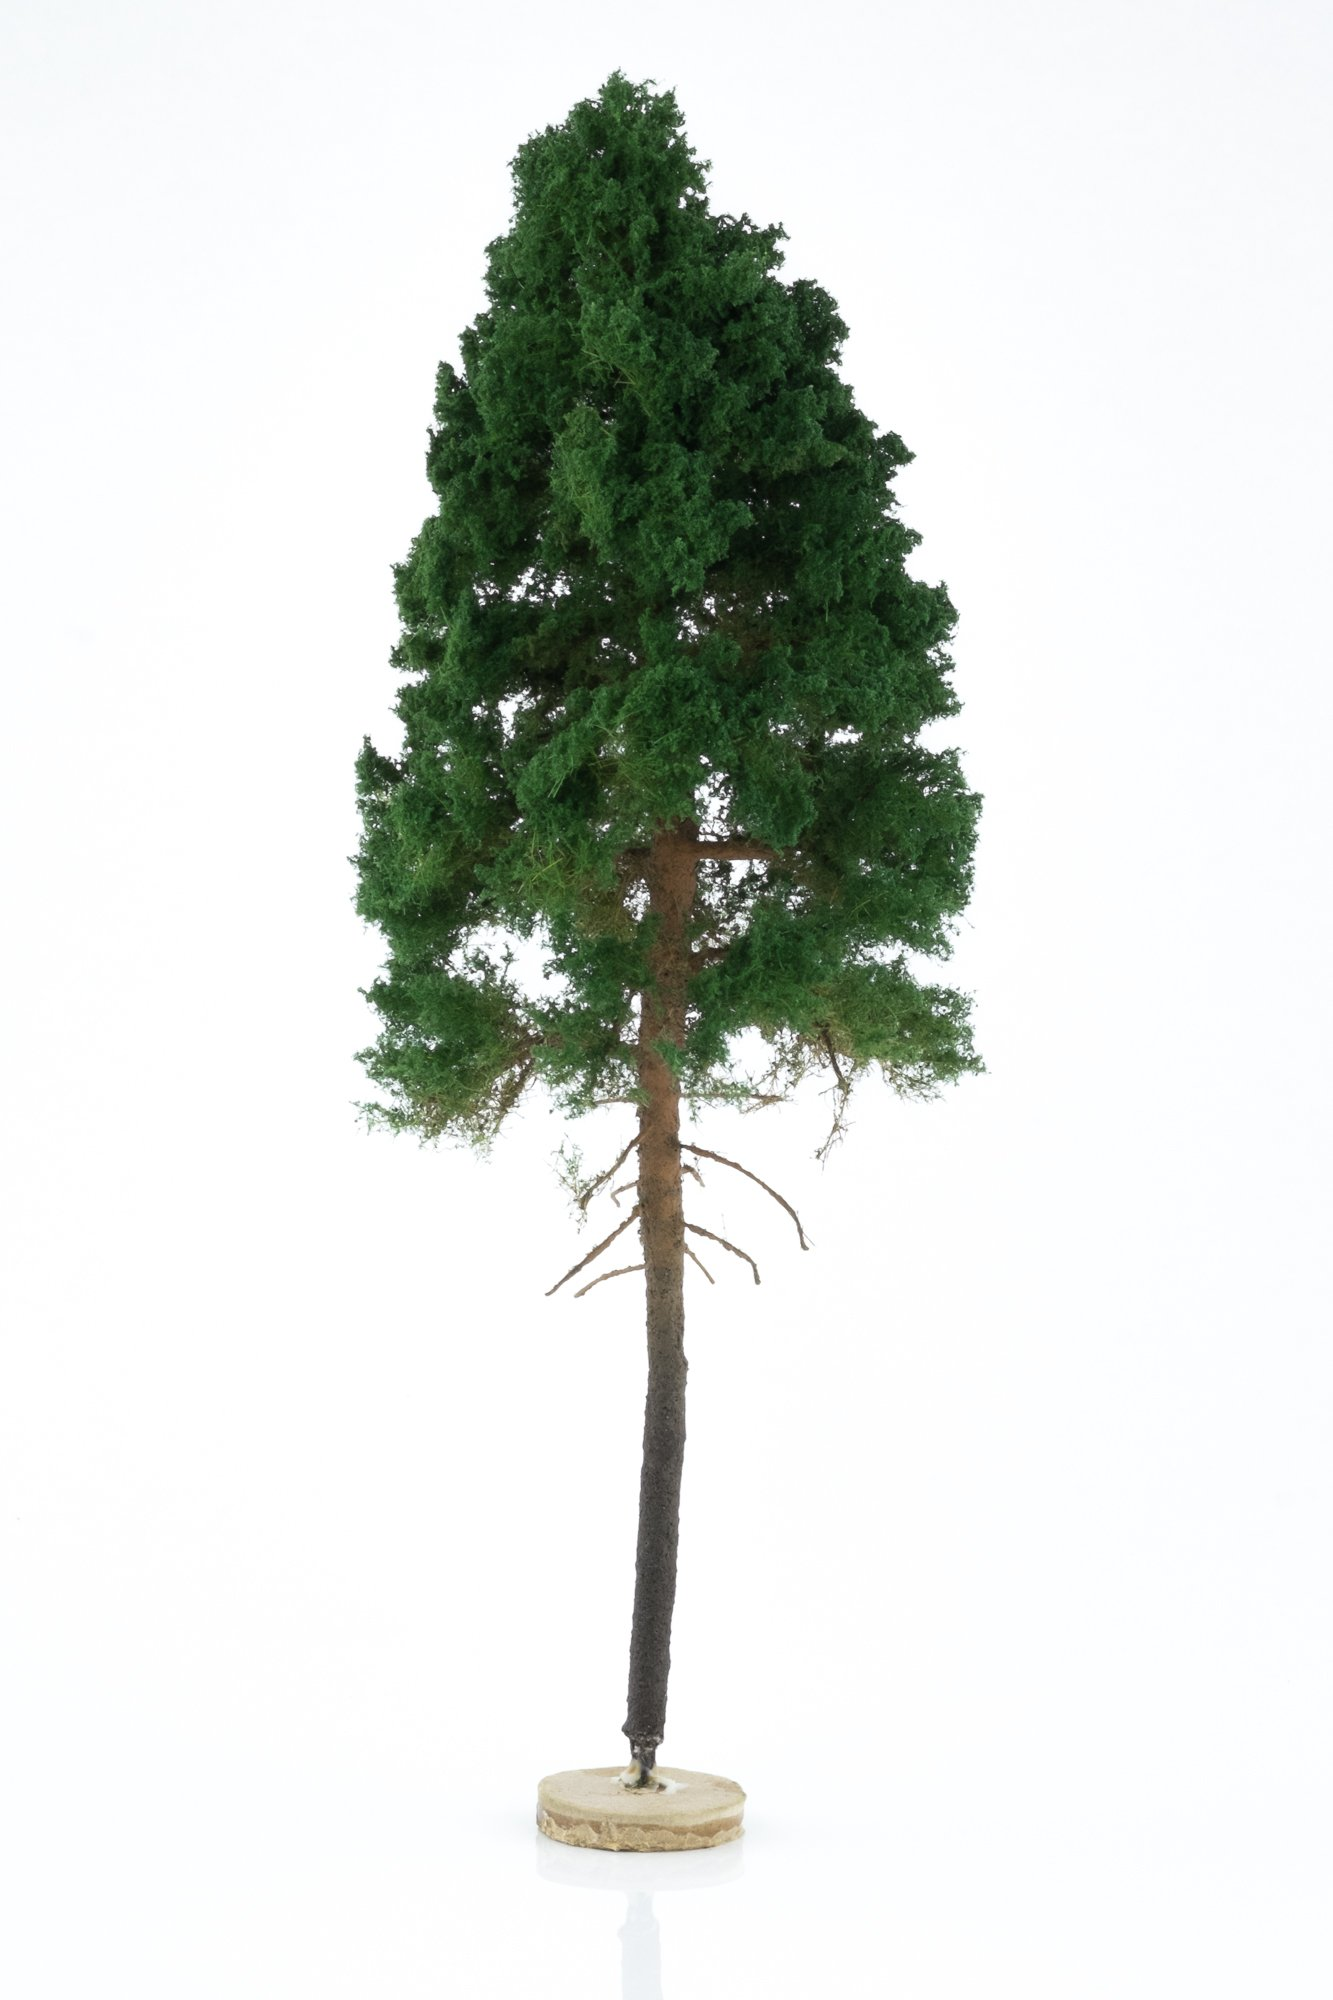 Hand-made, green, pine tree model. Size between 26 and 28 cm. Made from high quality model supplies by Primo Models.